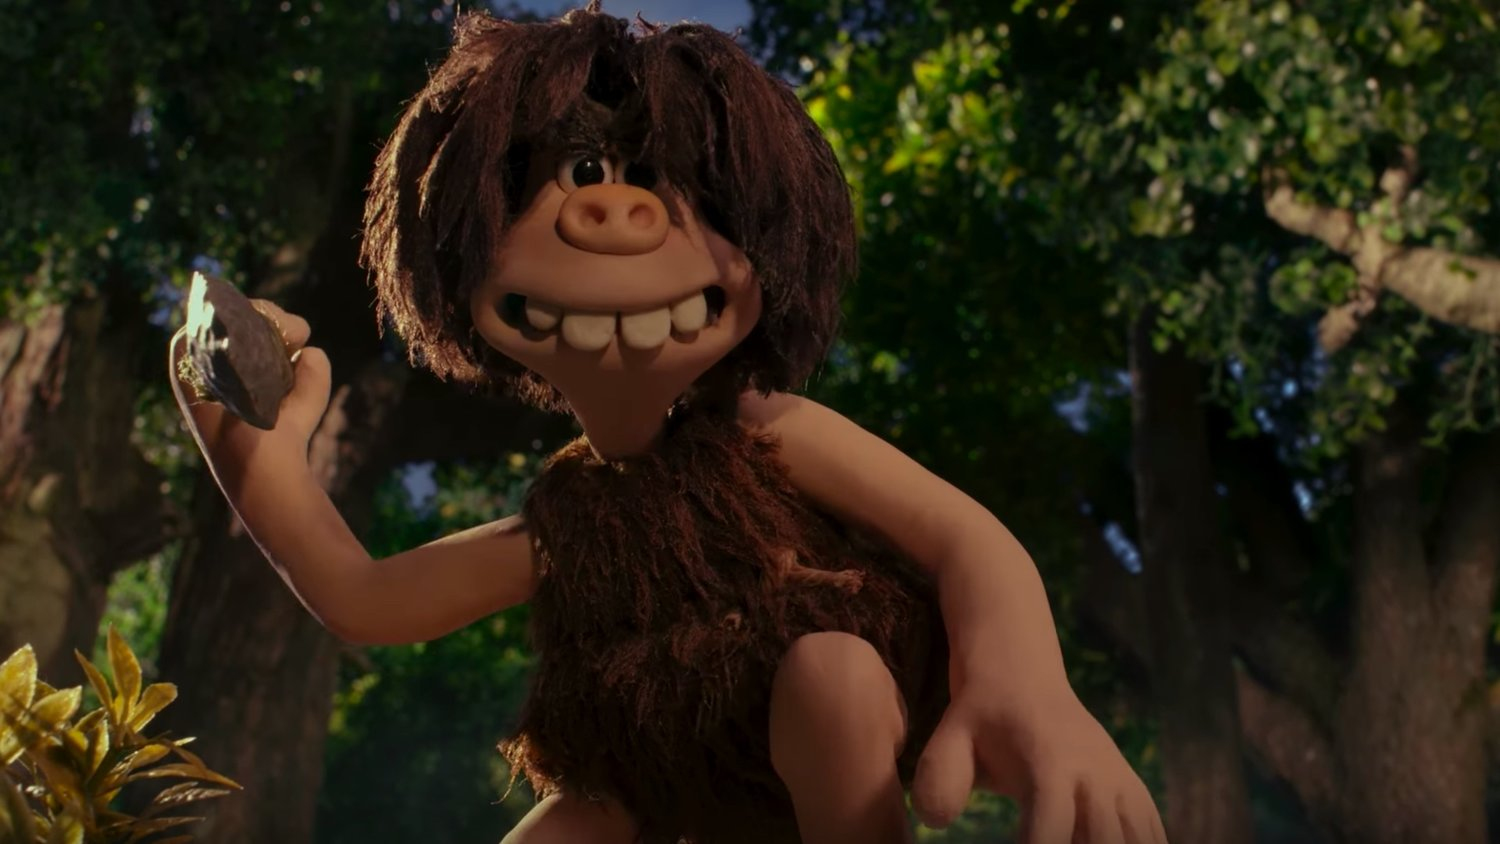 Delightful Teaser Trailer for Aardman Animations' Stop-Motion Stone Age Film EARLY MAN